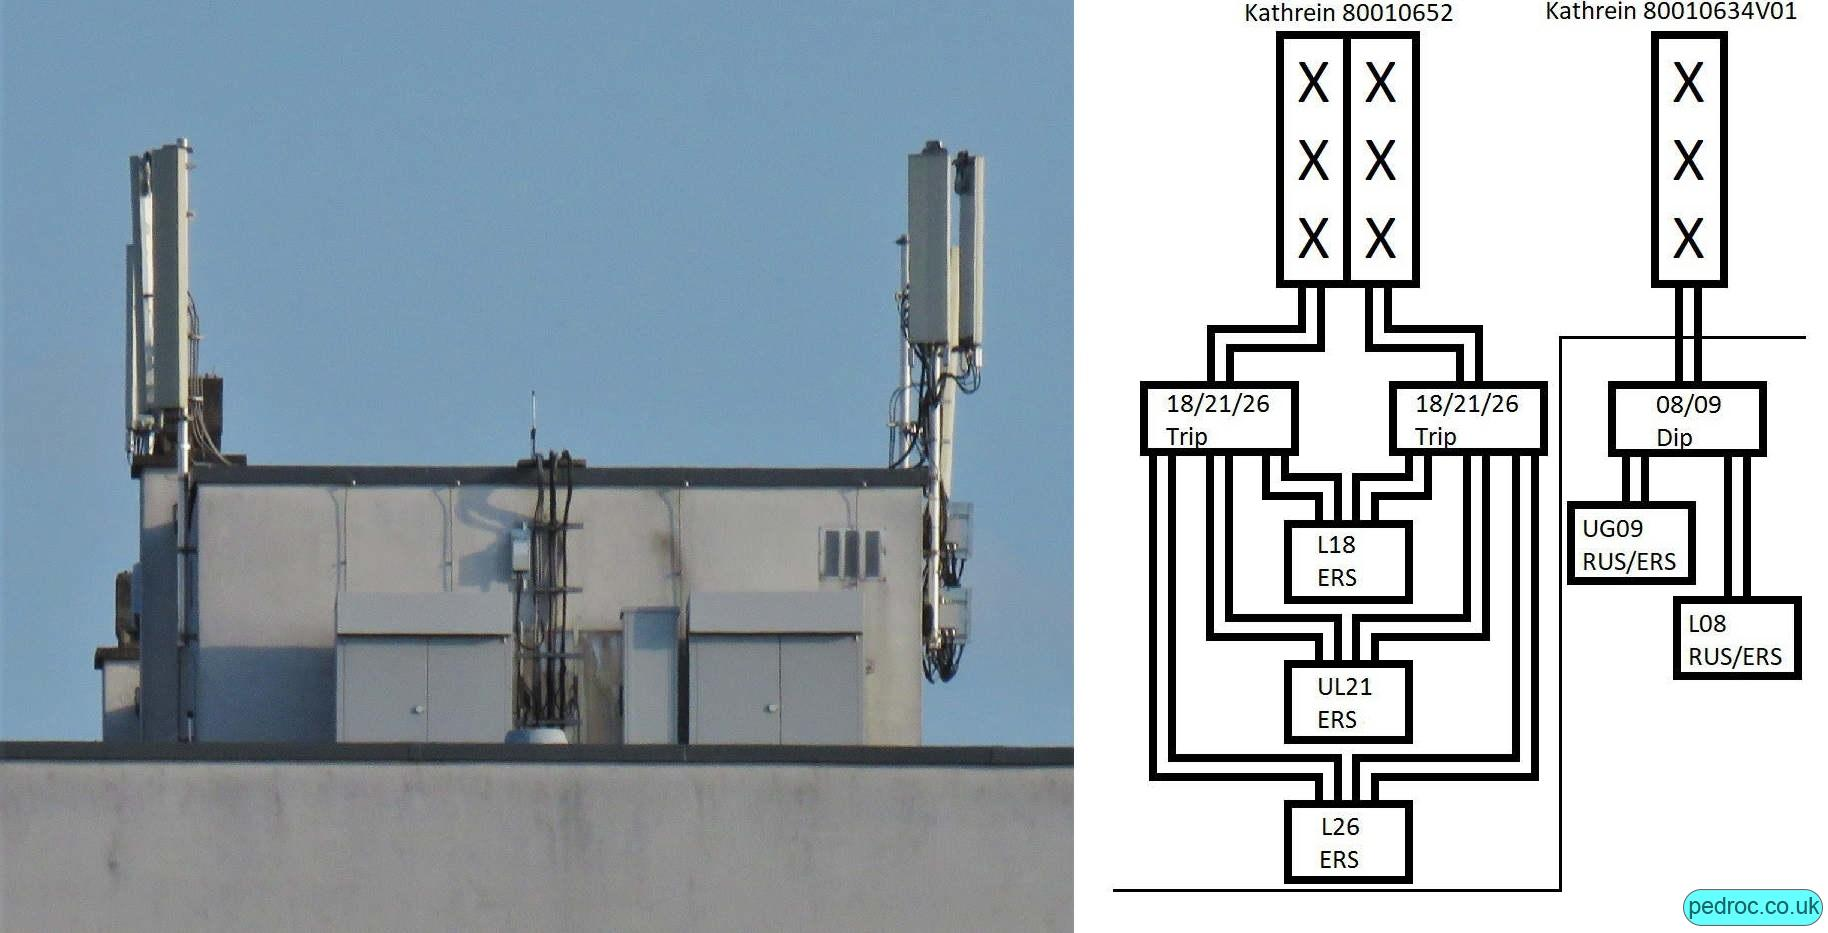 A Swisscom quad 4G carrier site in Basel.